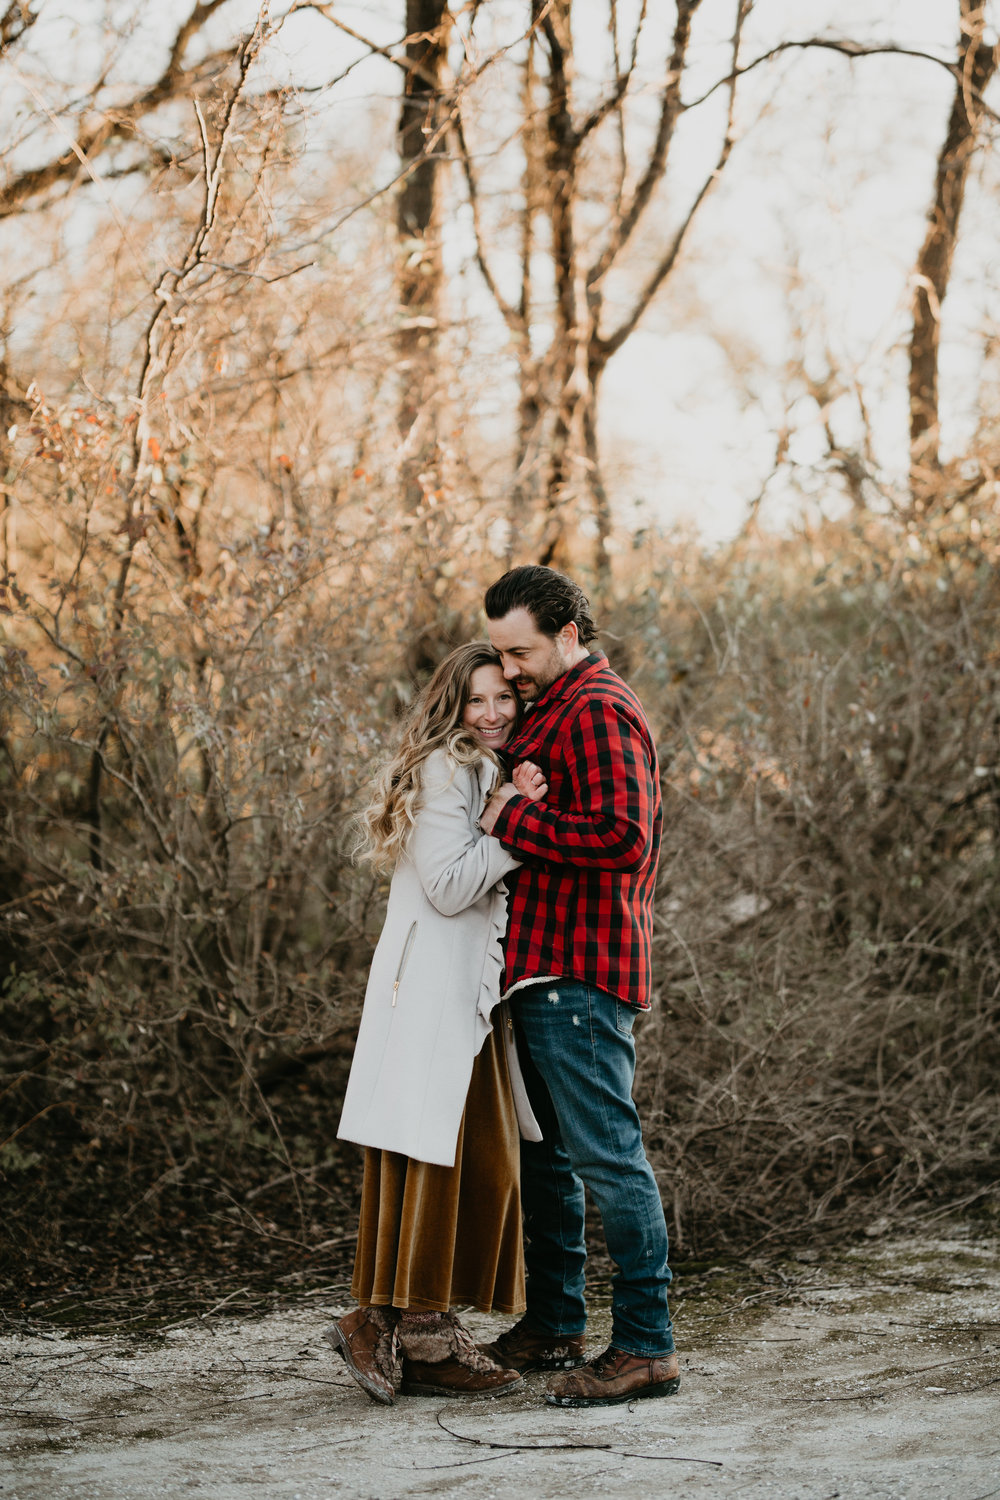 nicole-daacke-photography-white-cliffs-of-conoy-in-lancaster-pa-pennsylvania-adventure-session-adventure-elopement-photographer-engagement session-in-lancaster-pa-photographer-golden-sunset-winter-solstice-wedding-riverside-elopement-5250.jpg